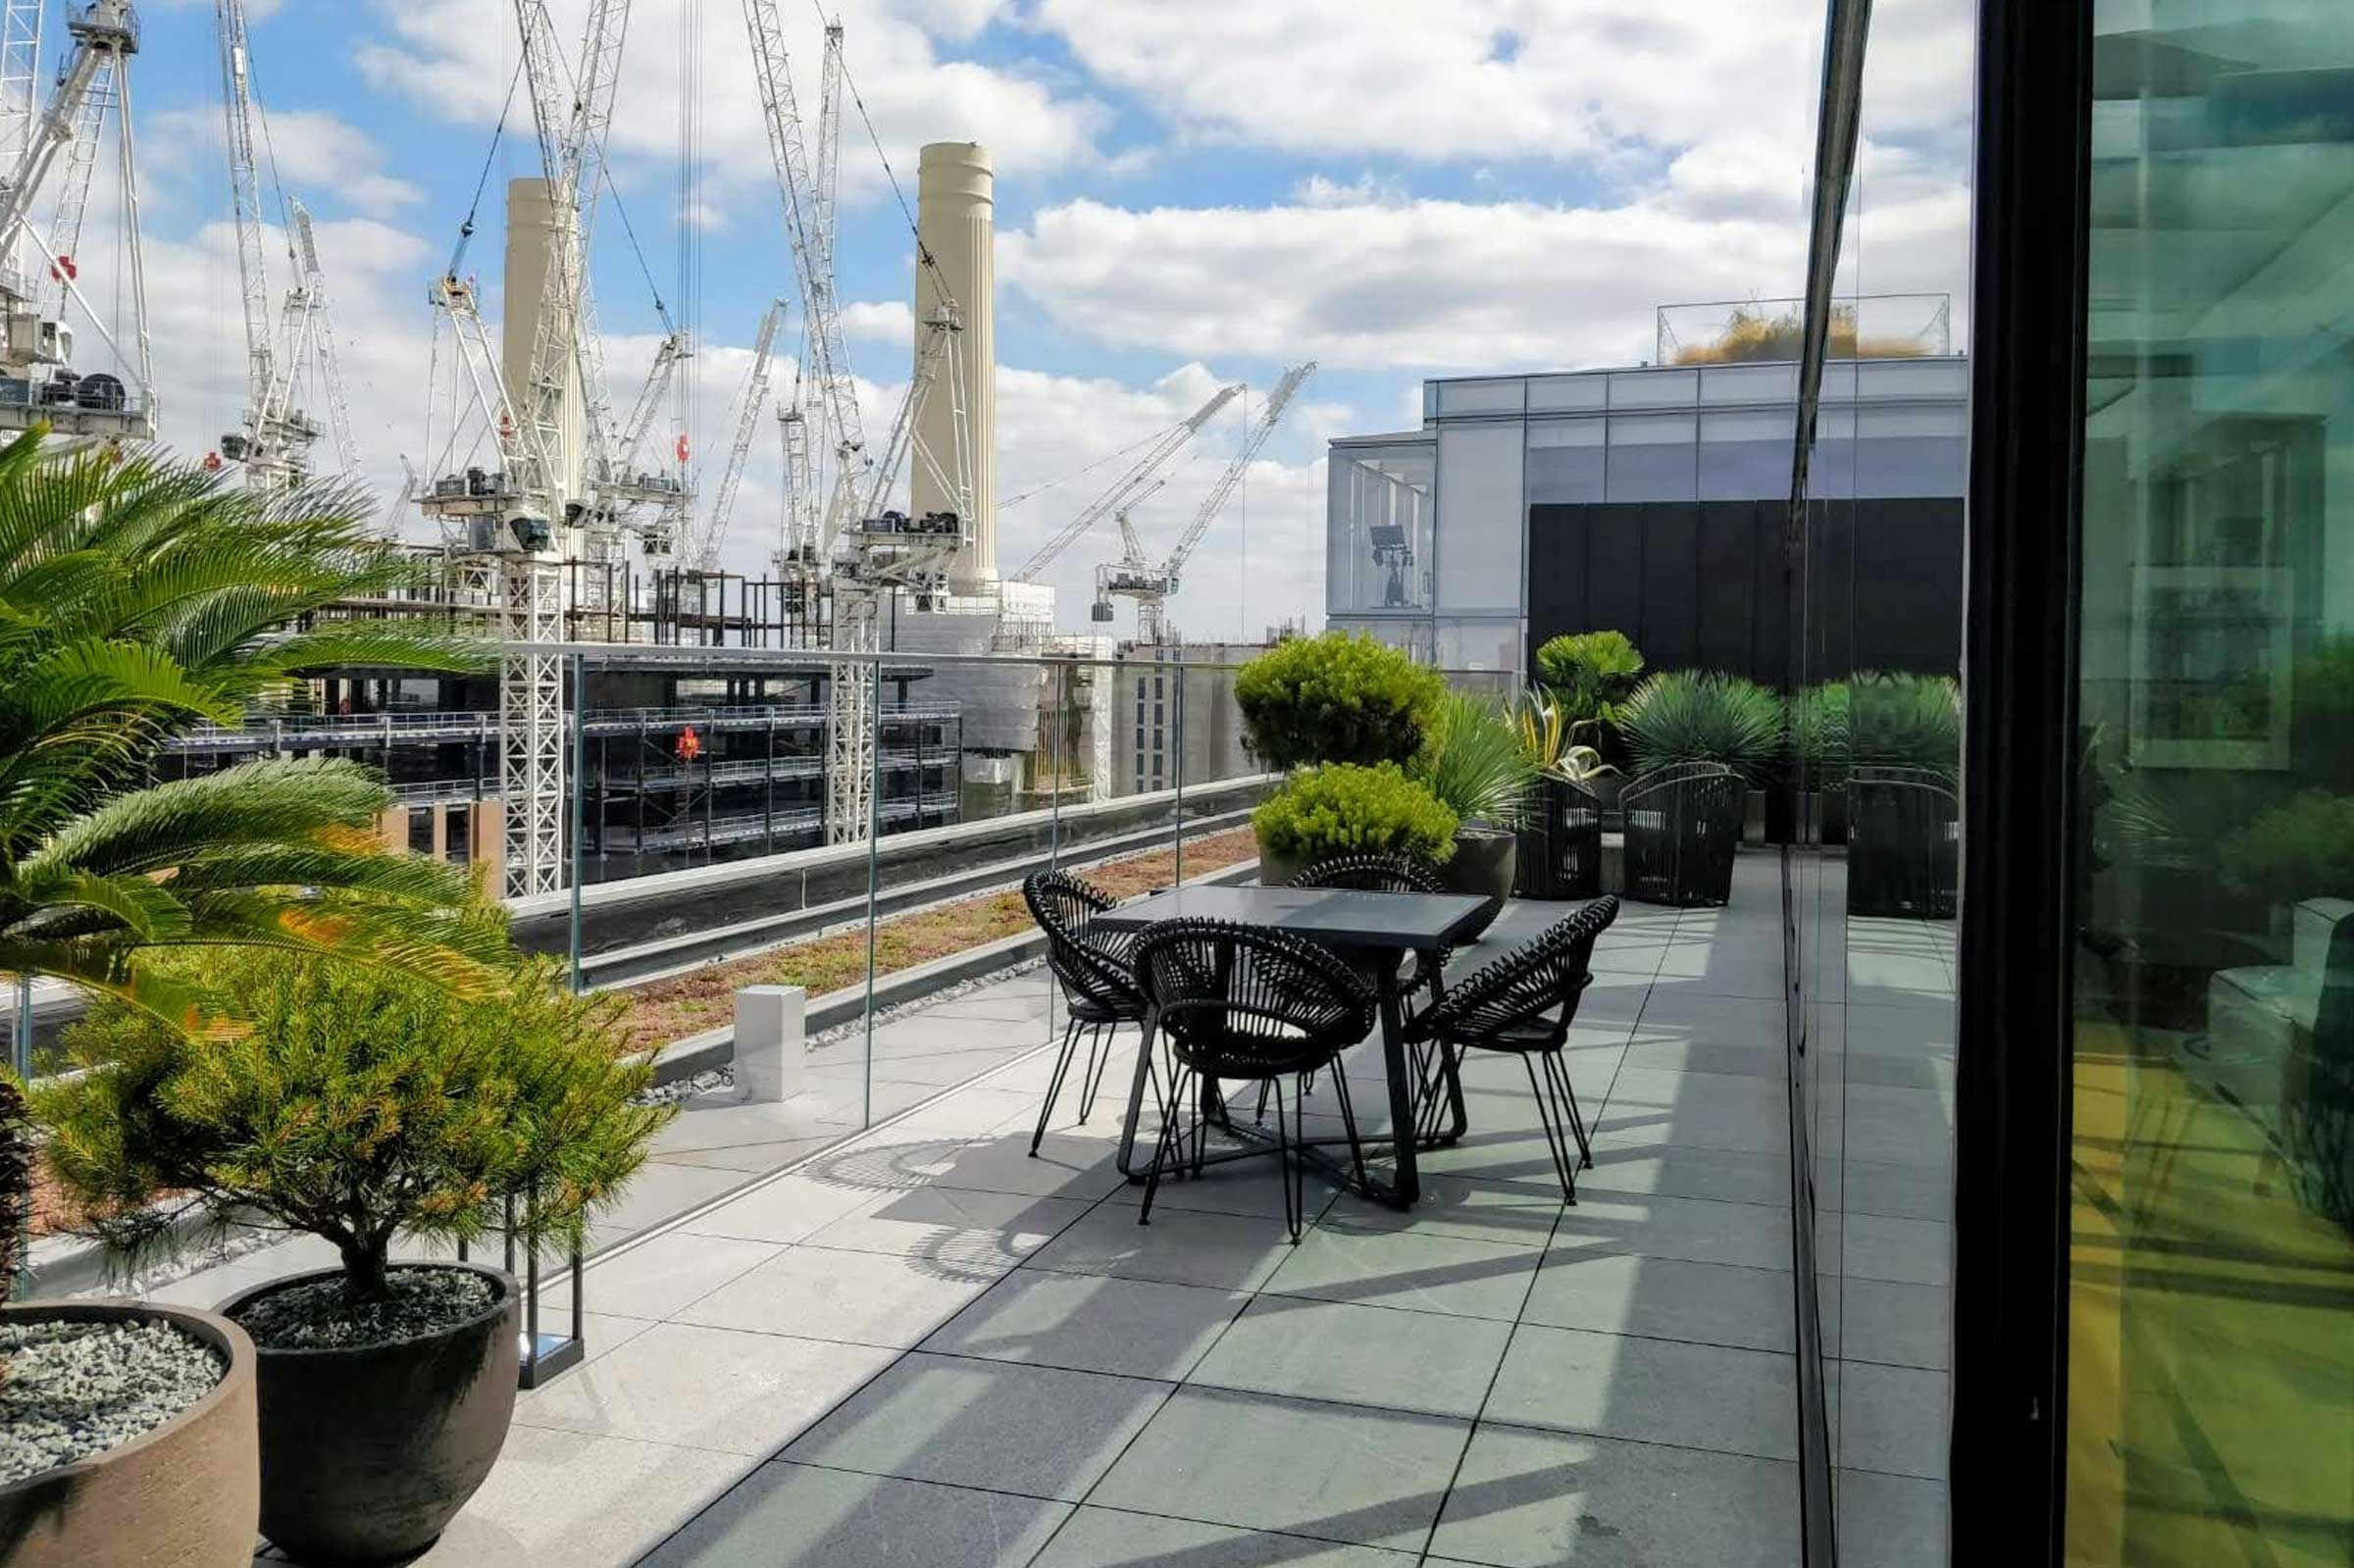 Battersea Landscaping project